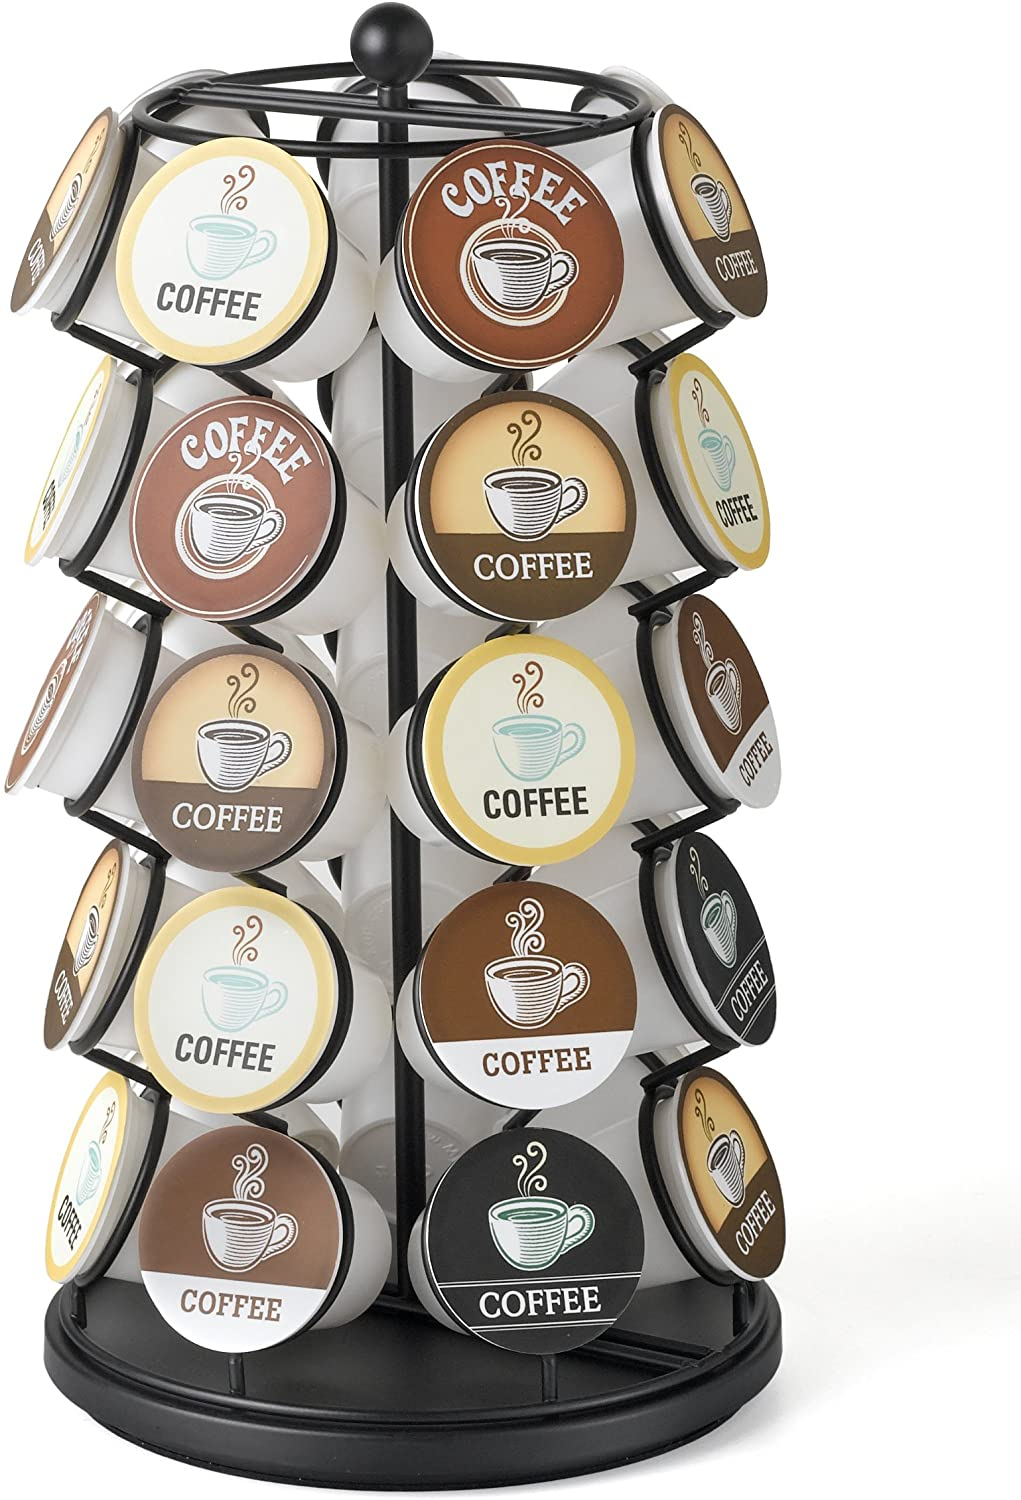 K-Cup in Carousel holder